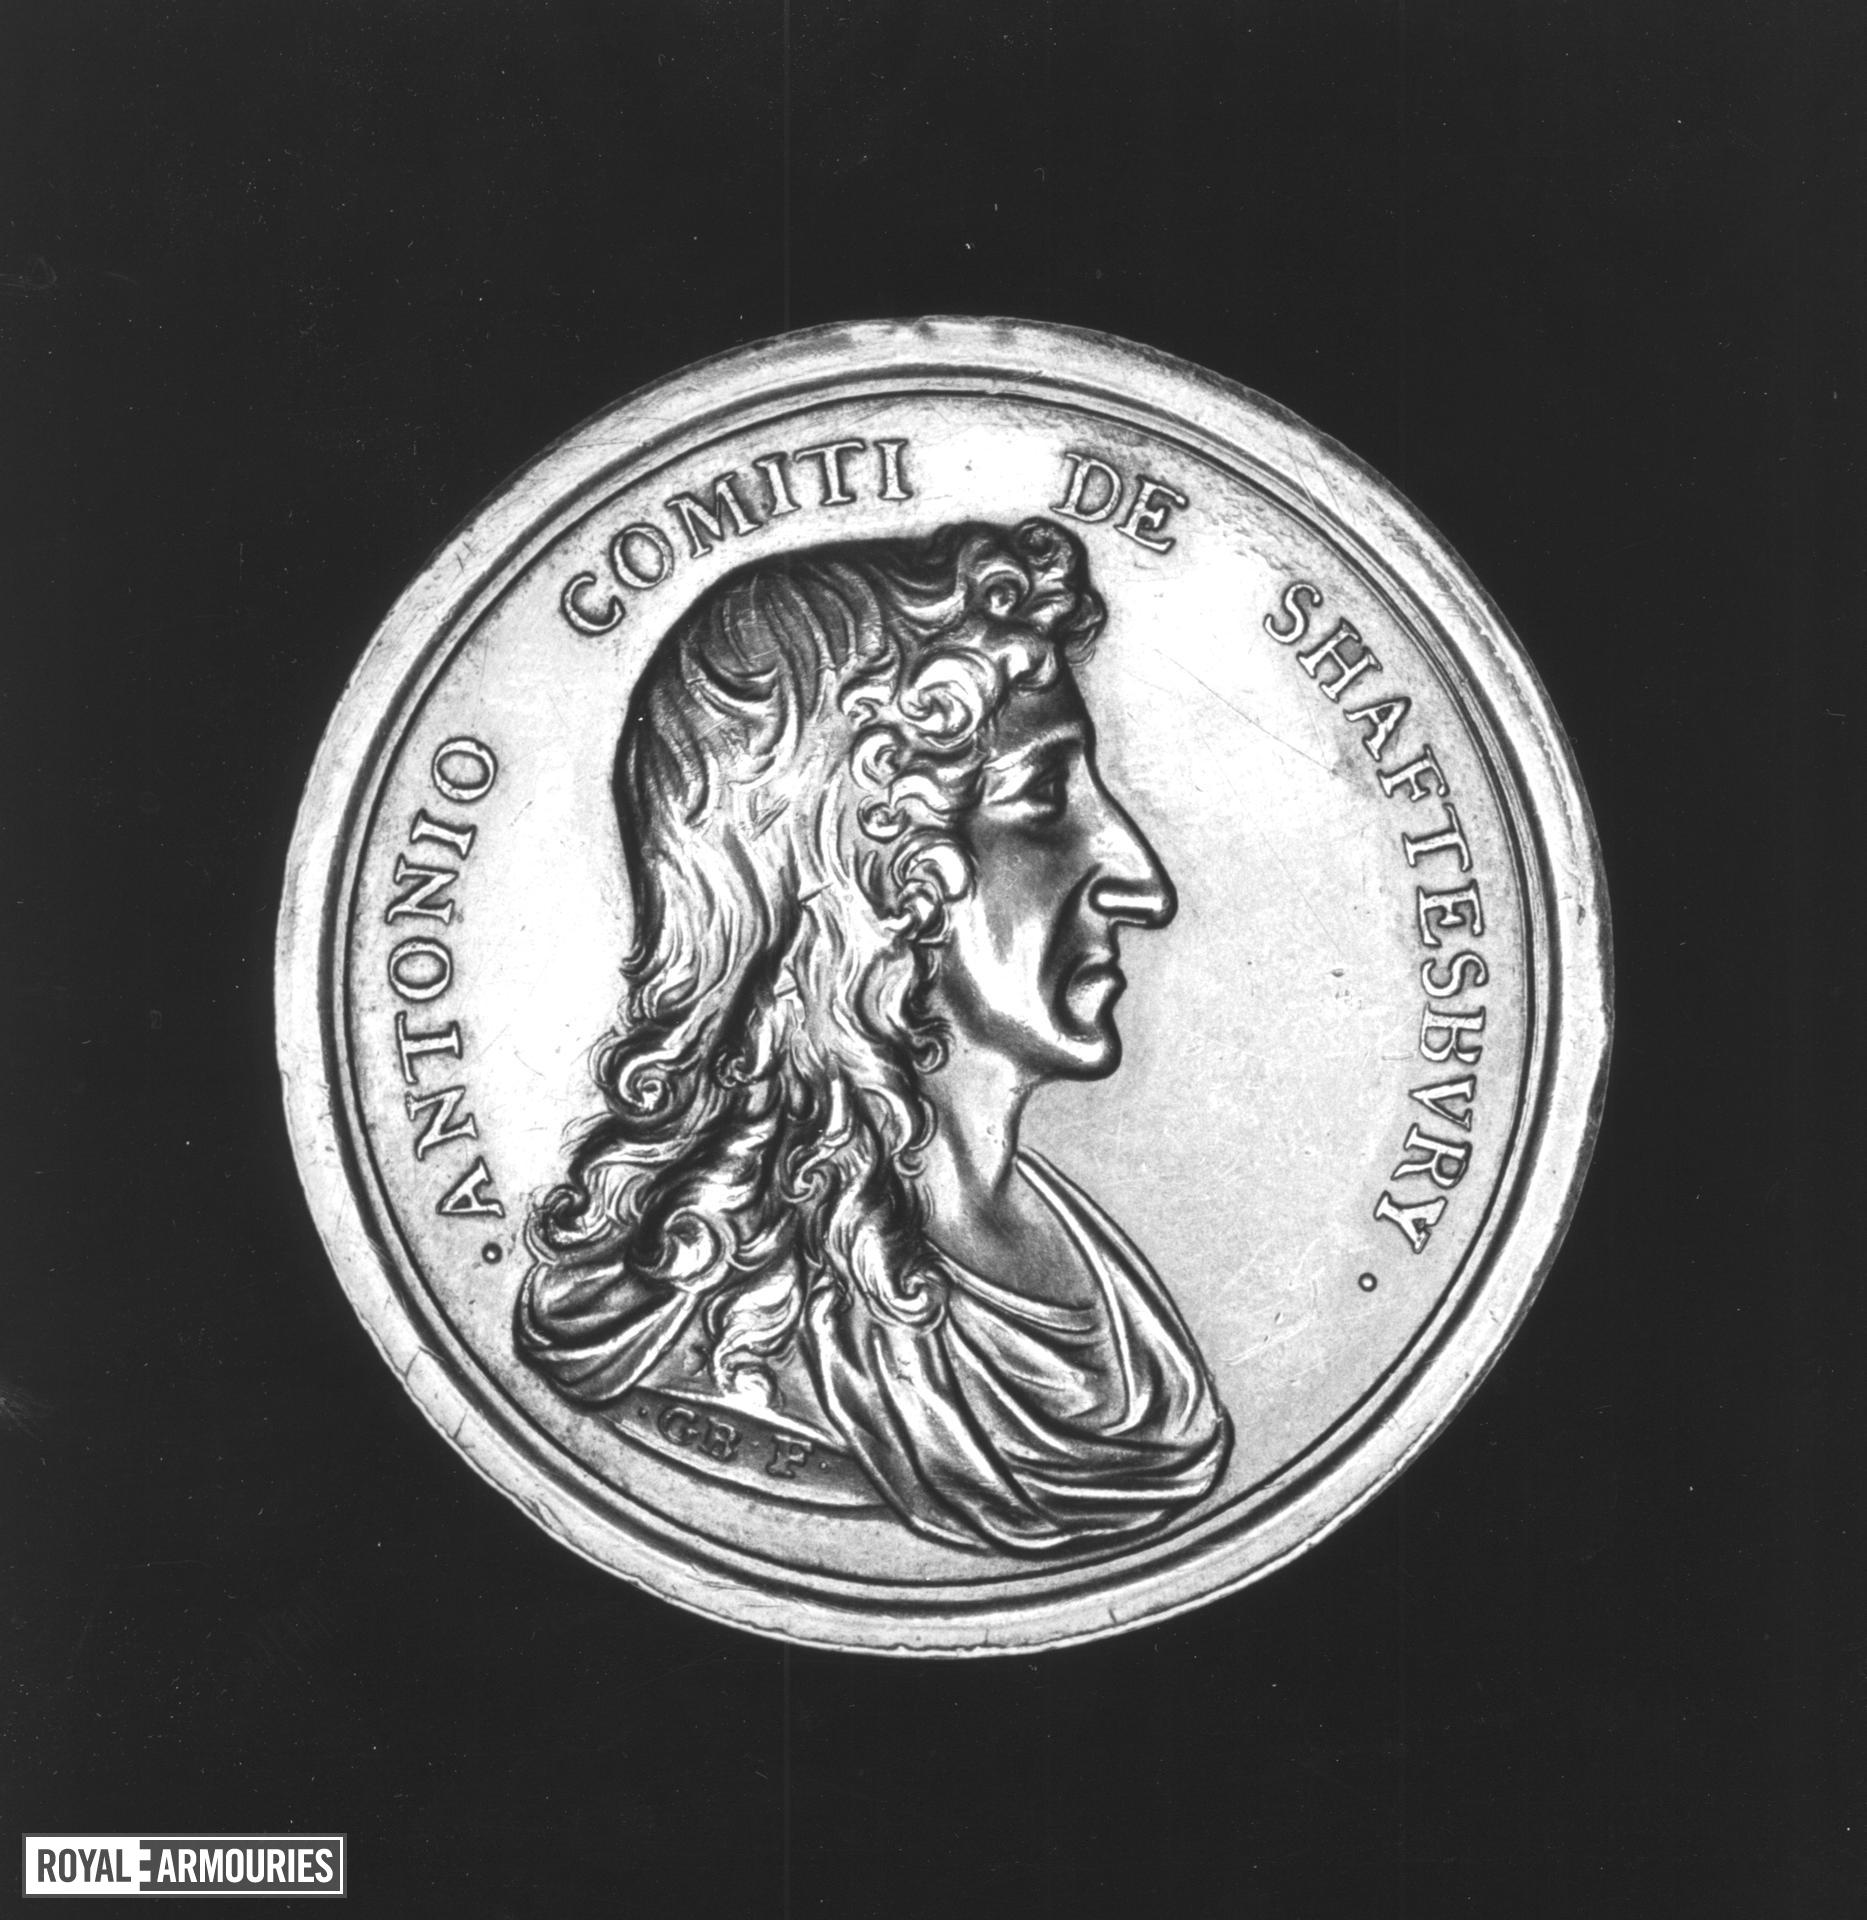 Commemorative Medal - By G. Bower Commemorating the the Earl of Shaftesbury's release from the Tower, 1681 Silver medal by G.Bower